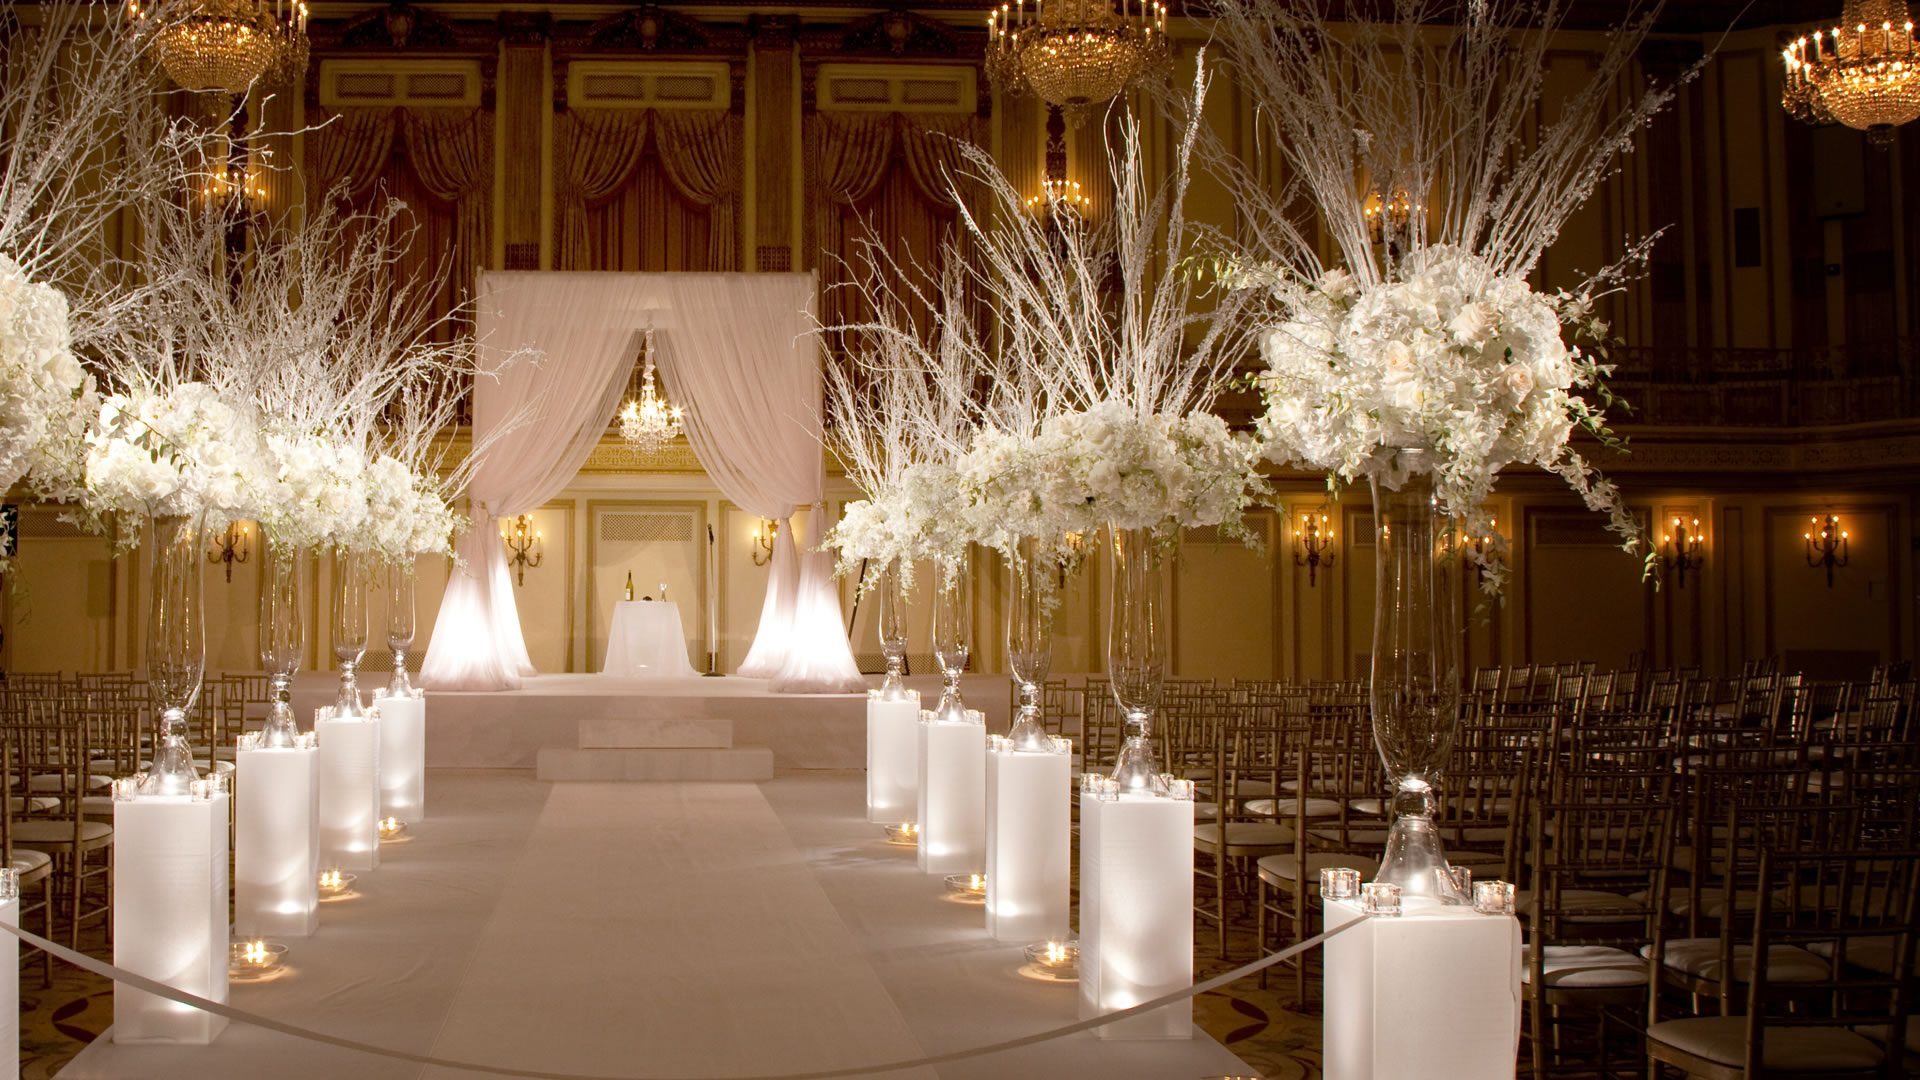 Chicago Weddings Palmerhouse Ballroom